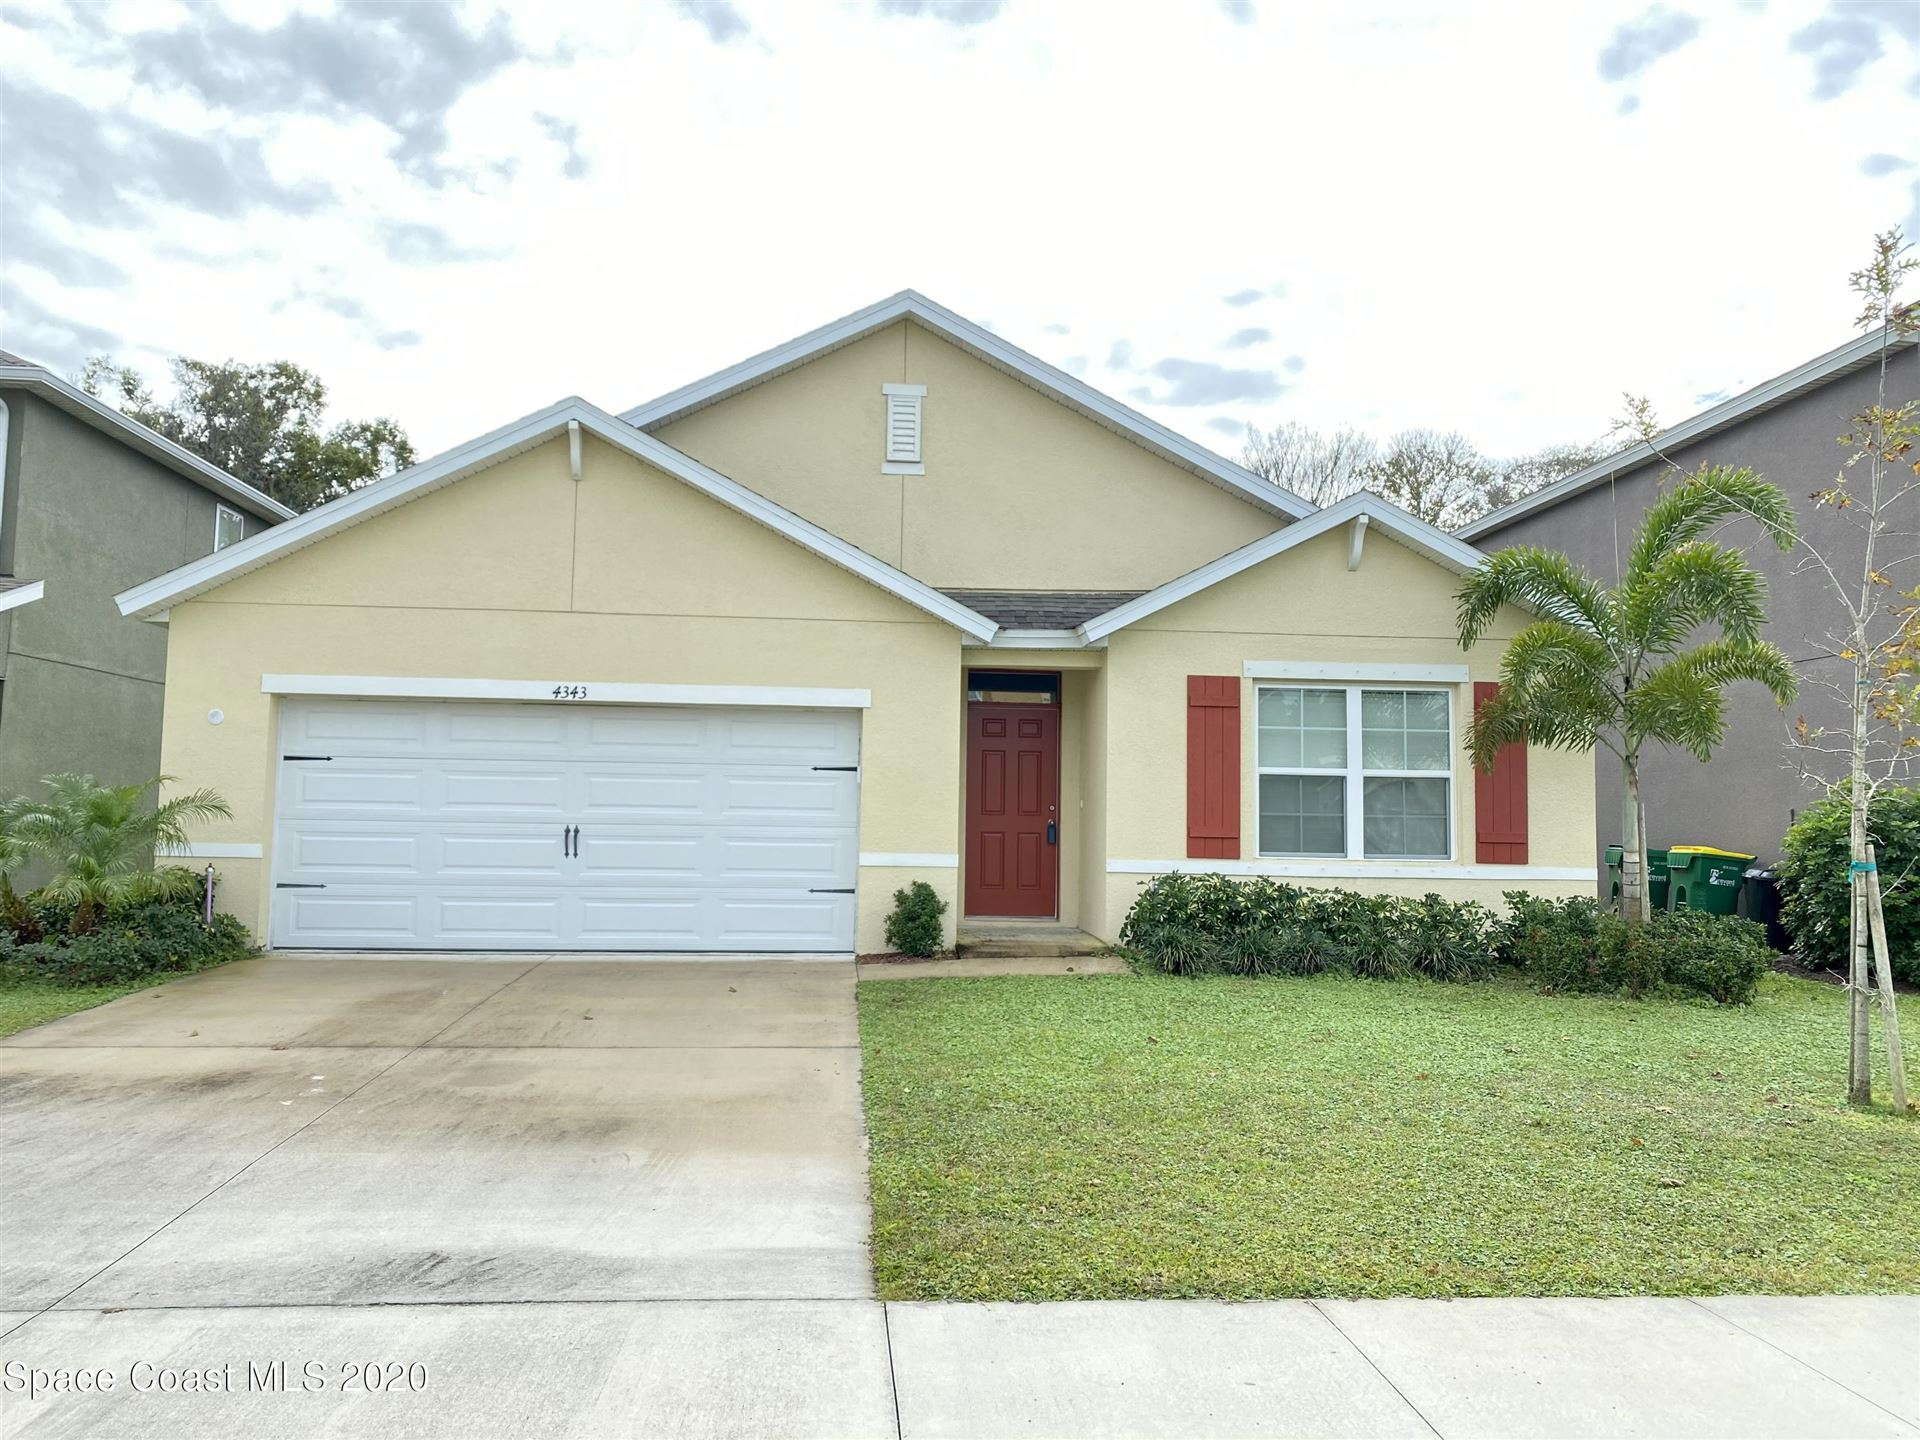 4343 Starling Place, Mims, FL 32754 - #: 892400